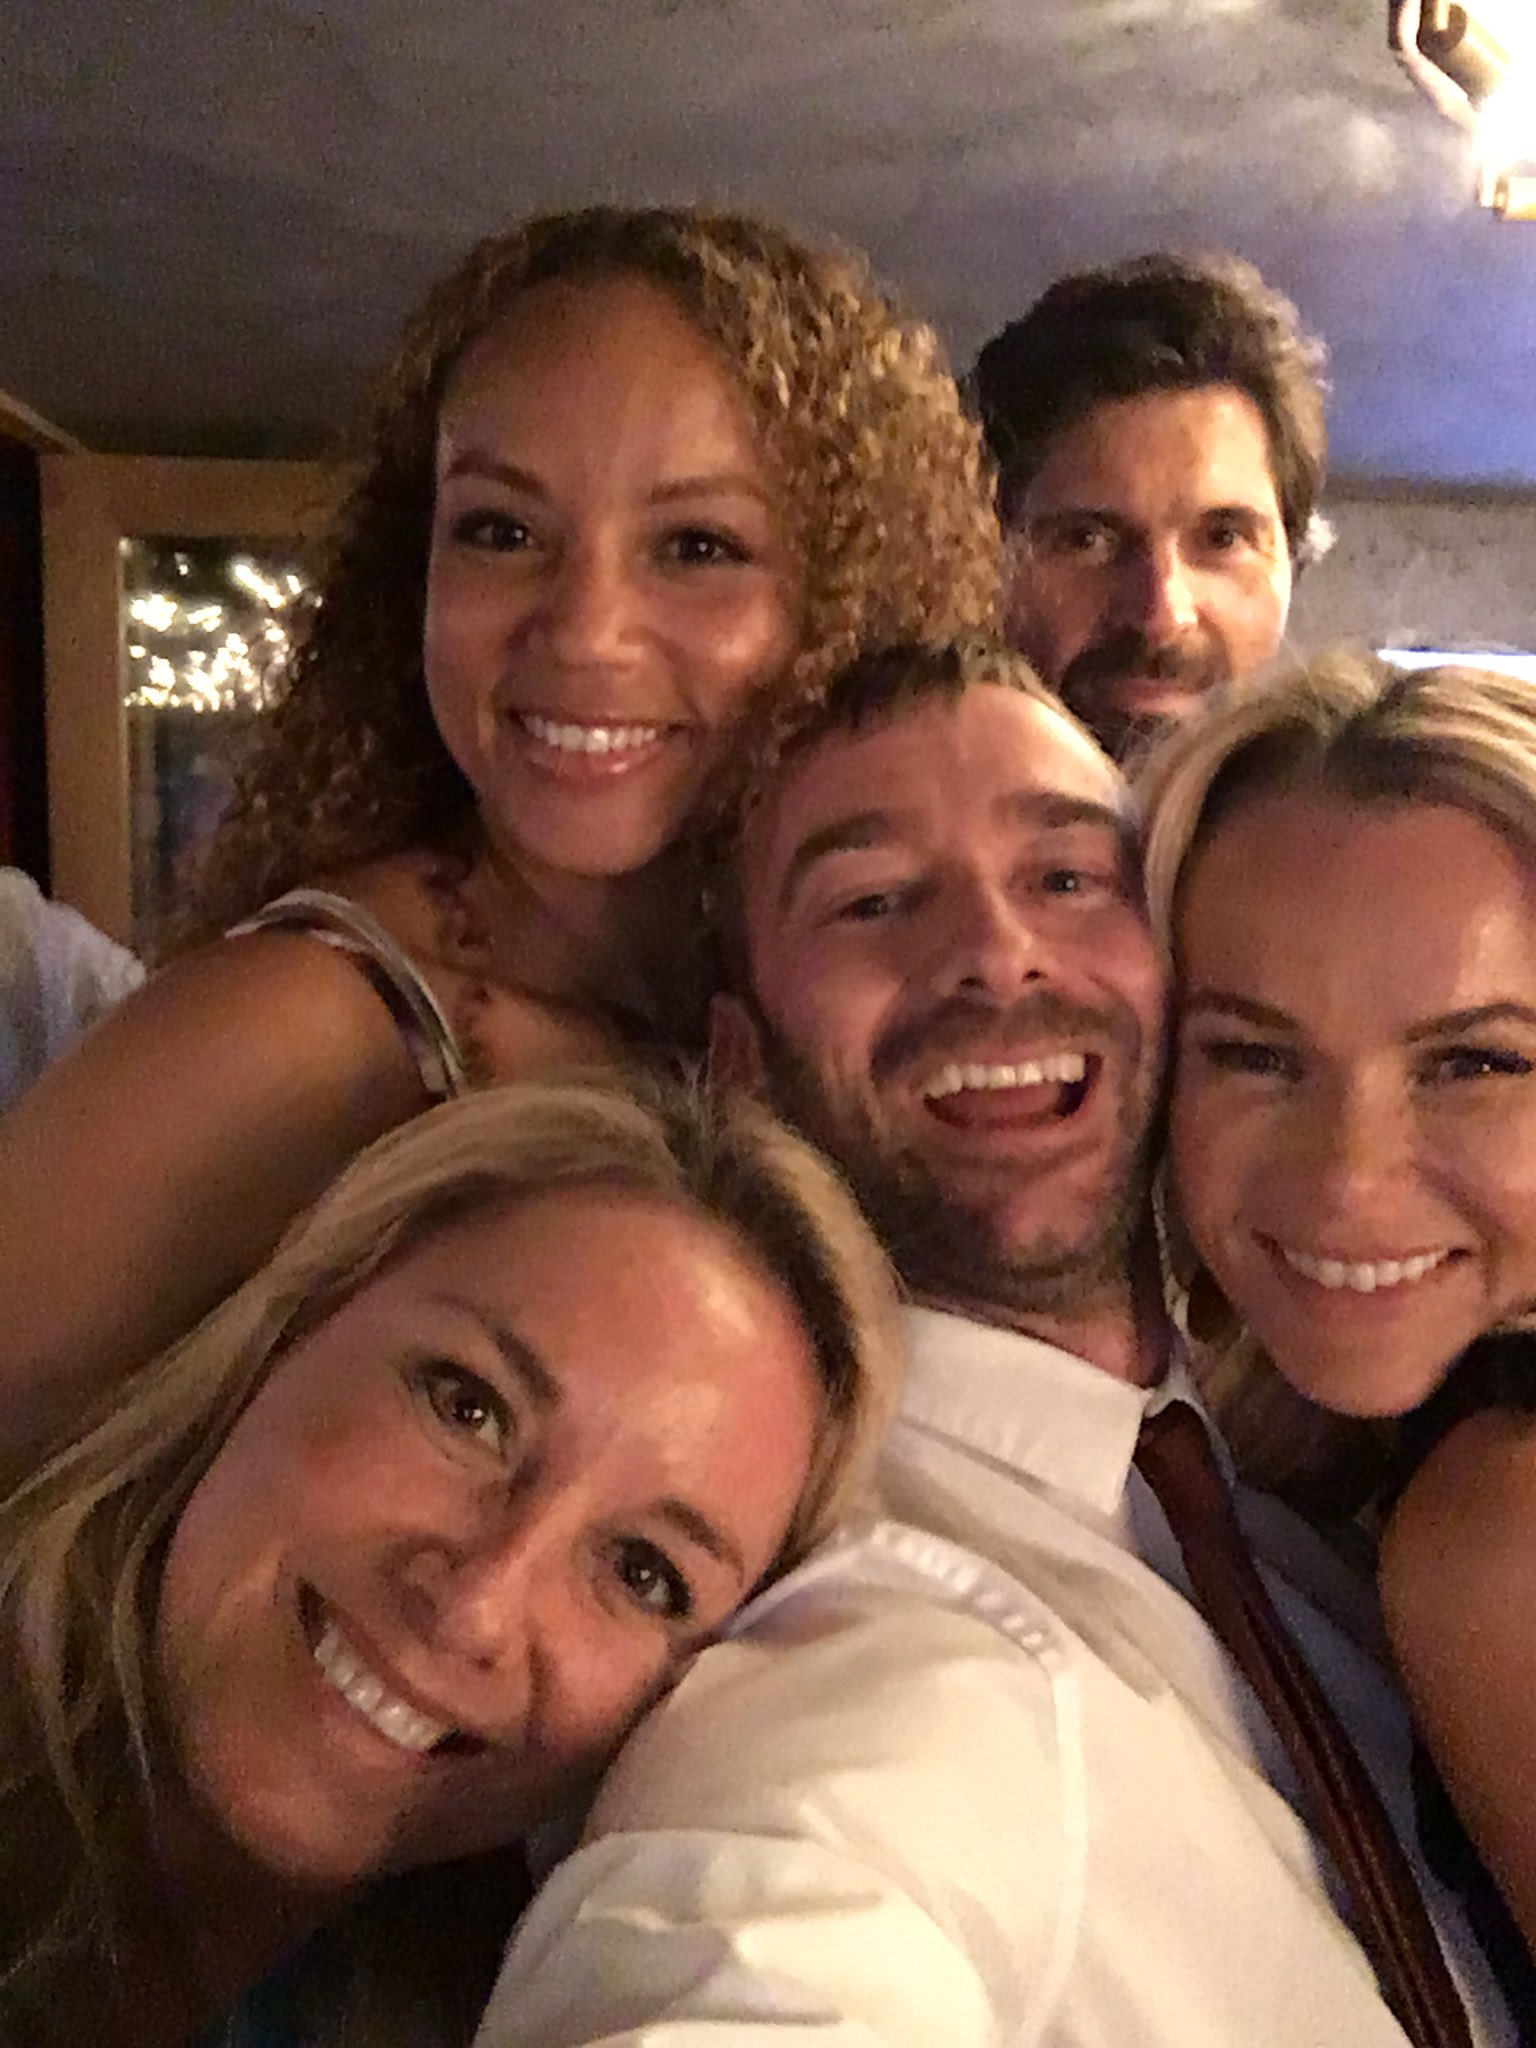 RT @Charliecondou: Out out @Angela_Griffin @AmandaHolden @mouthwaite @jaseewasee https://t.co/rOy8y9Zhxw